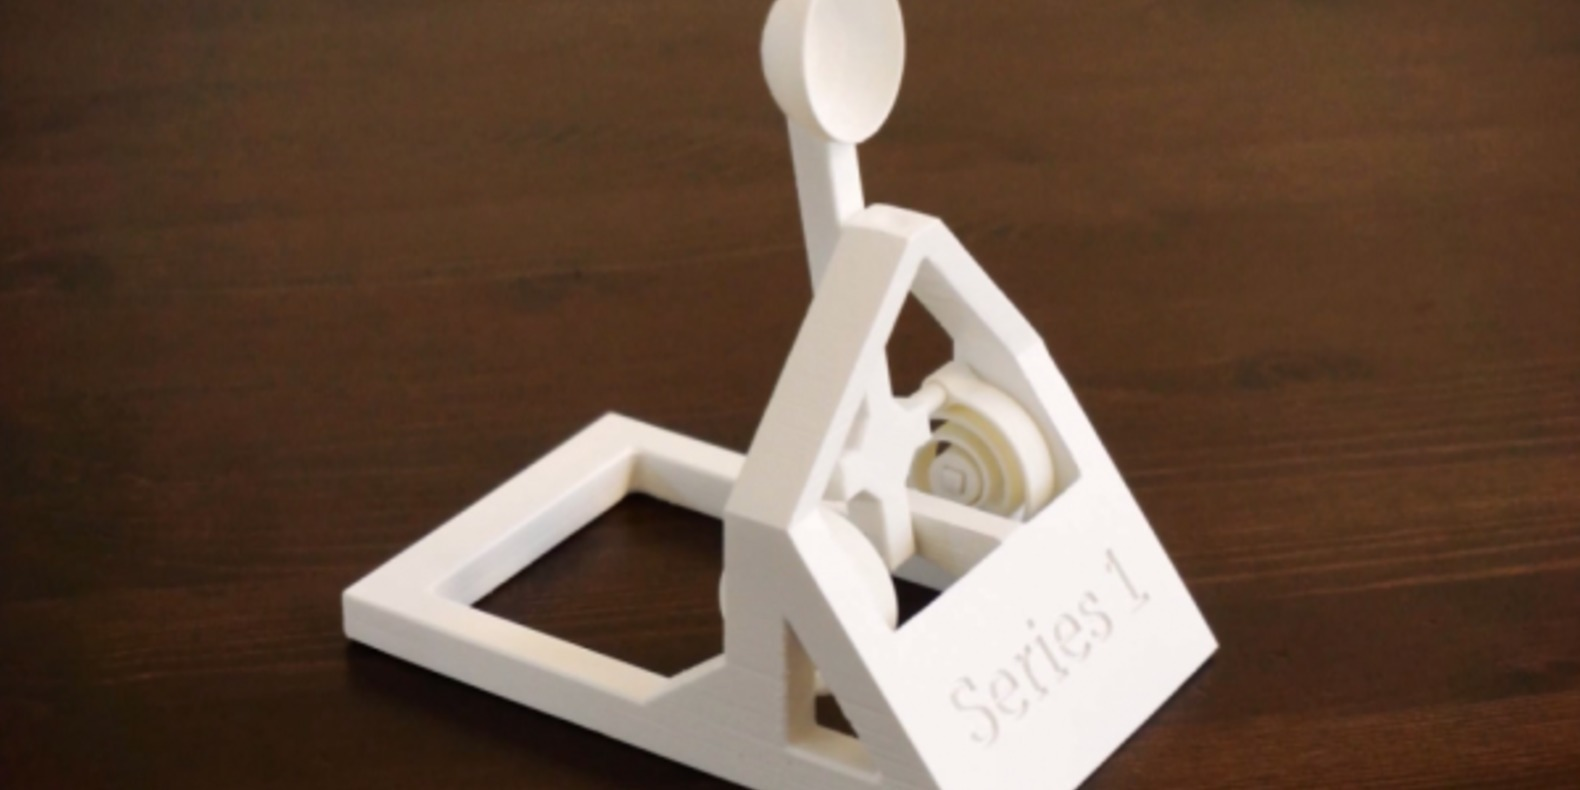 A catapult toy printed in 3D